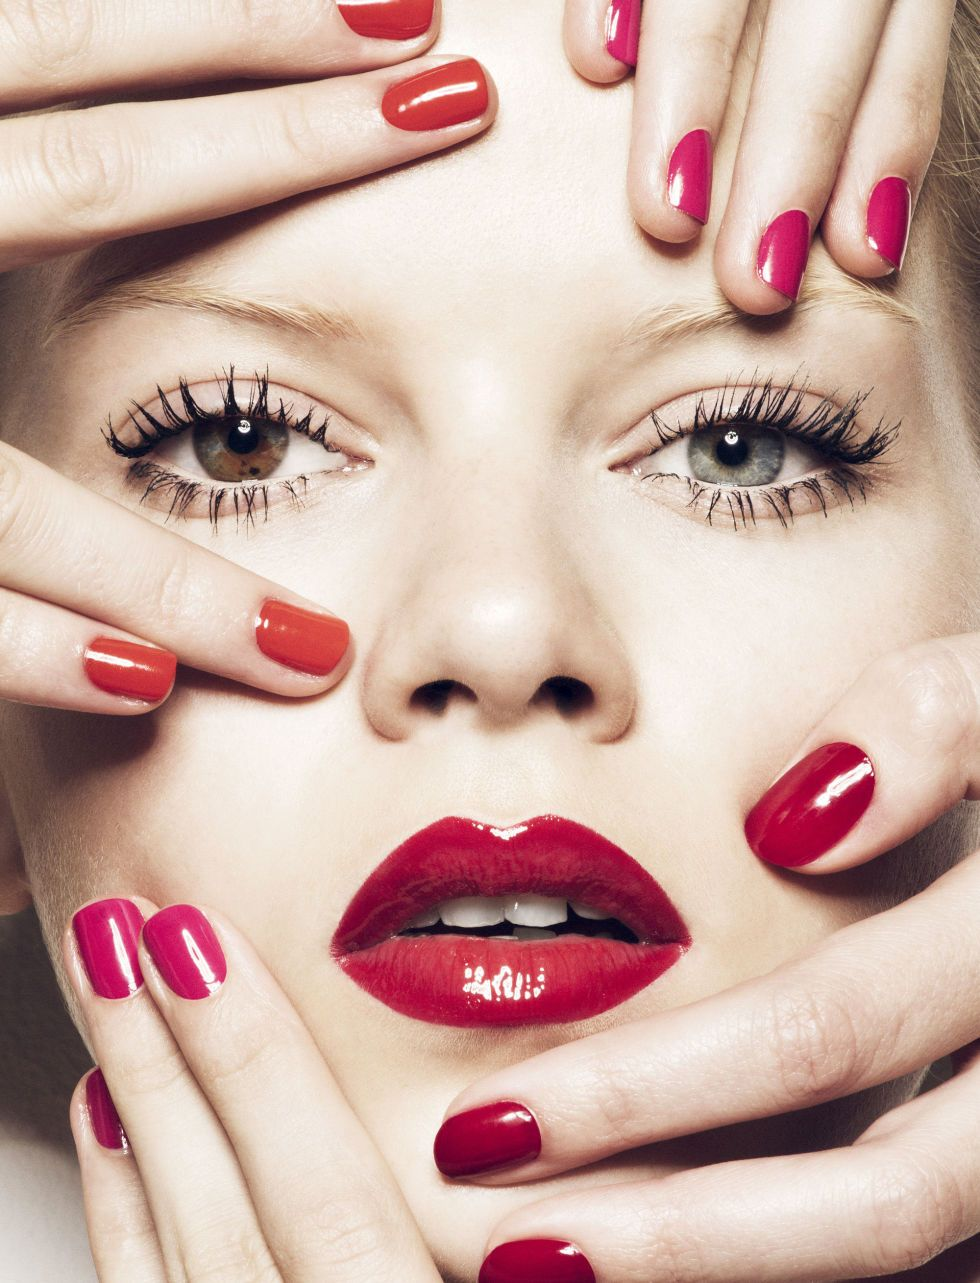 Brighten up your spring beauty with these chic nail polish and lipstick combos: